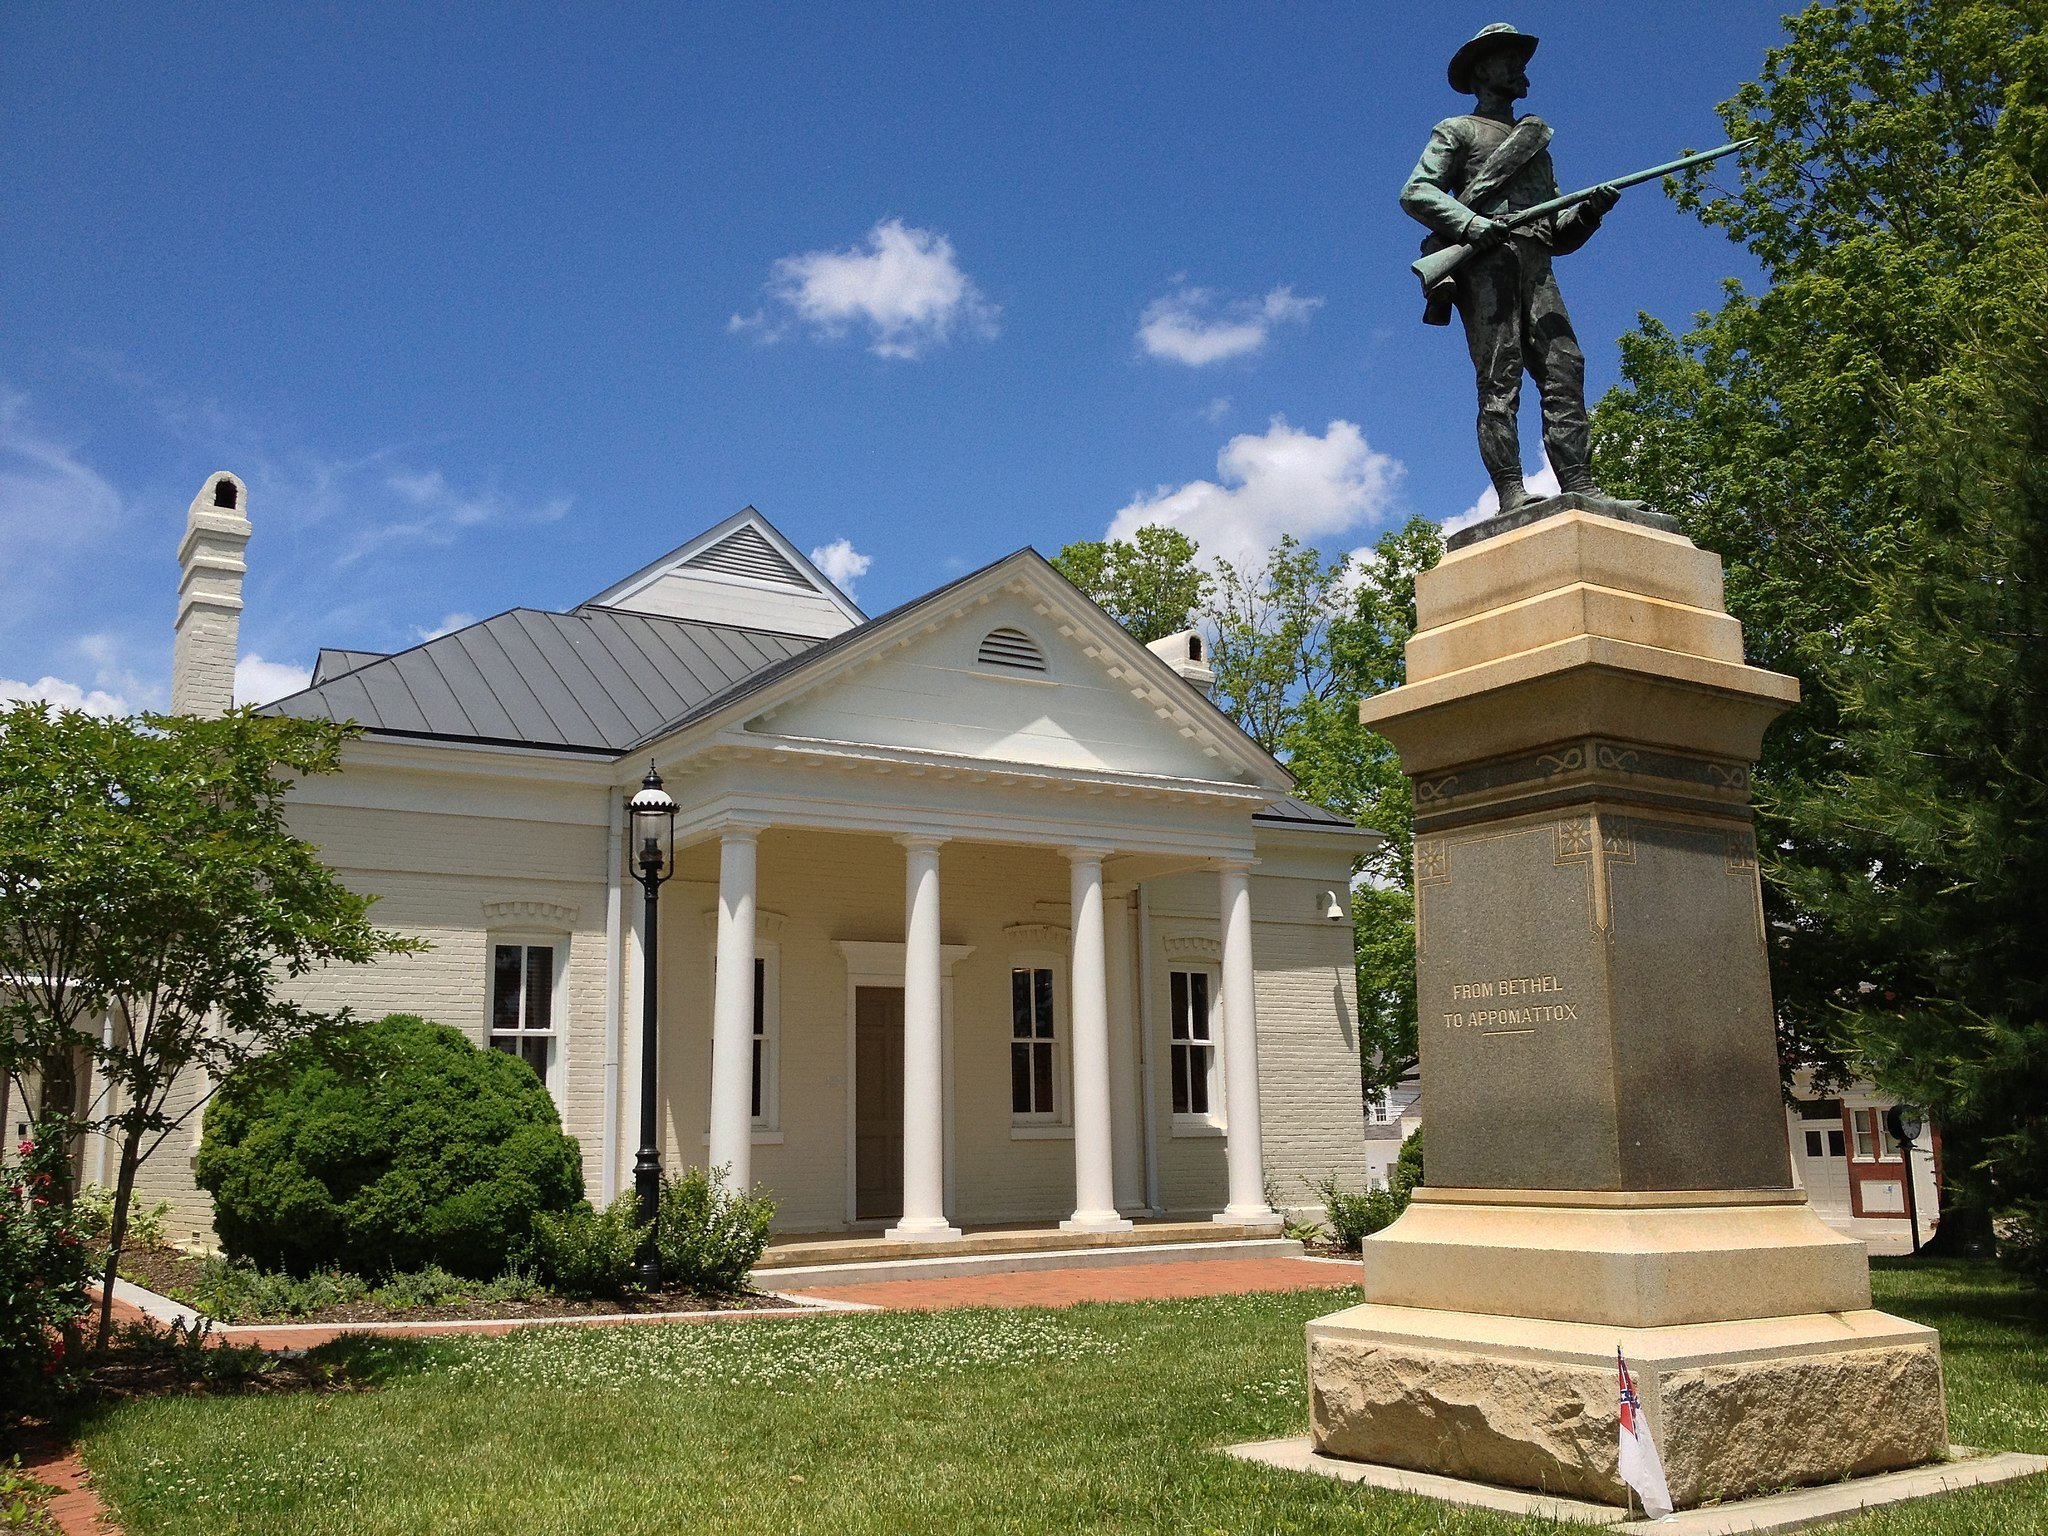 Mecklenburg County Courthouse in Boydton, Va.